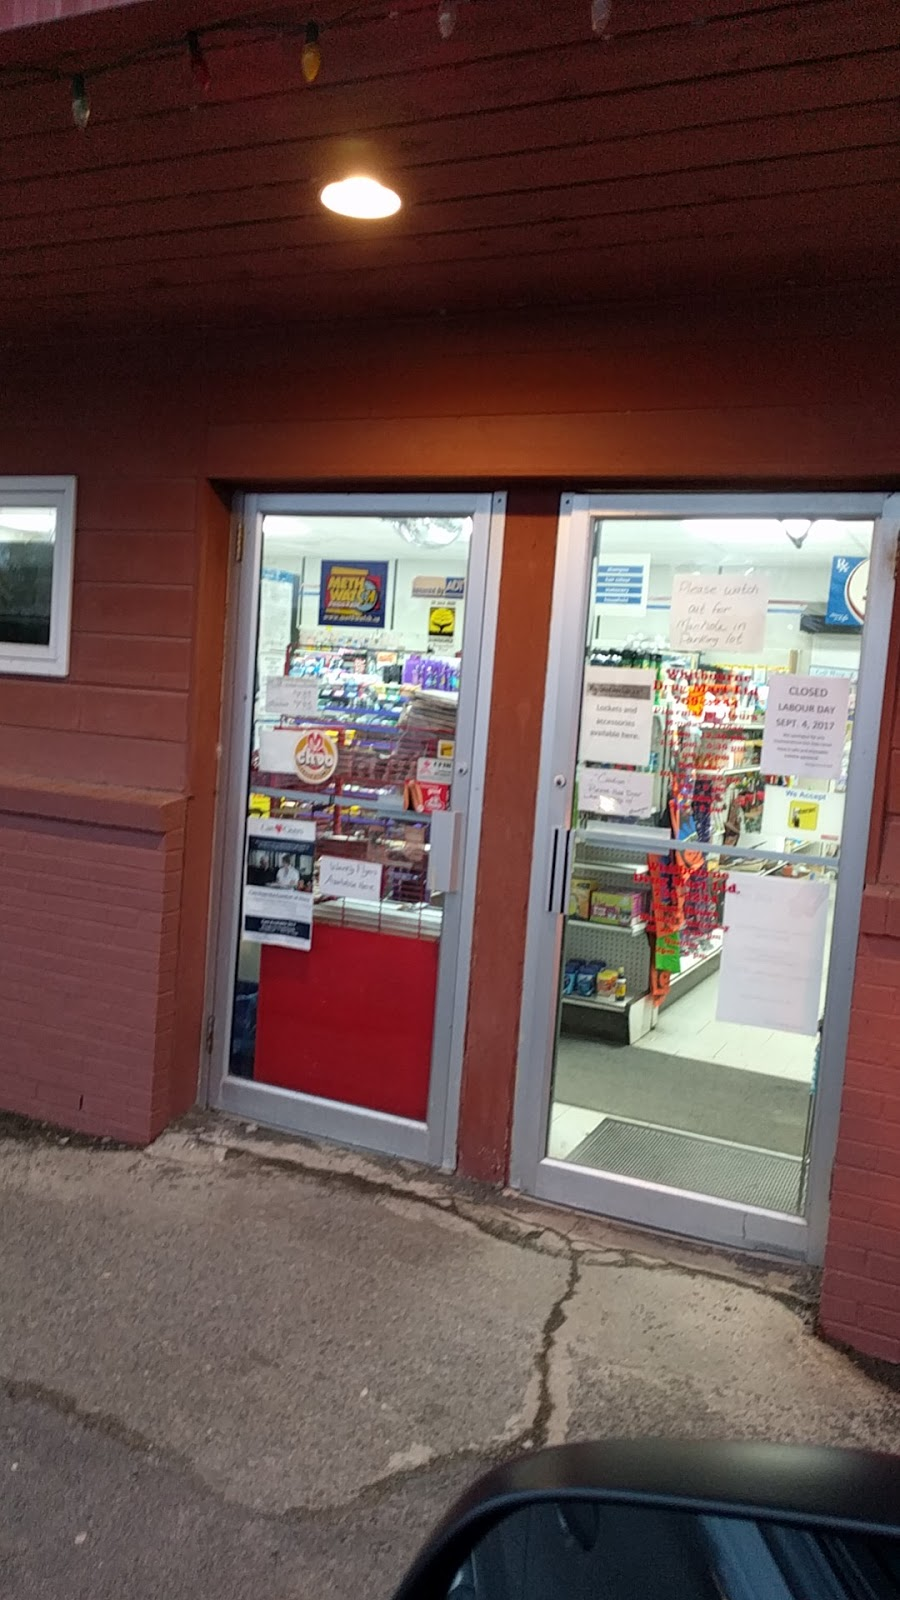 Whitbourne Drug Mart | health | 3 Whitbourne Ave, Whitbourne, NL A0B 3K0, Canada | 7097592244 OR +1 709-759-2244